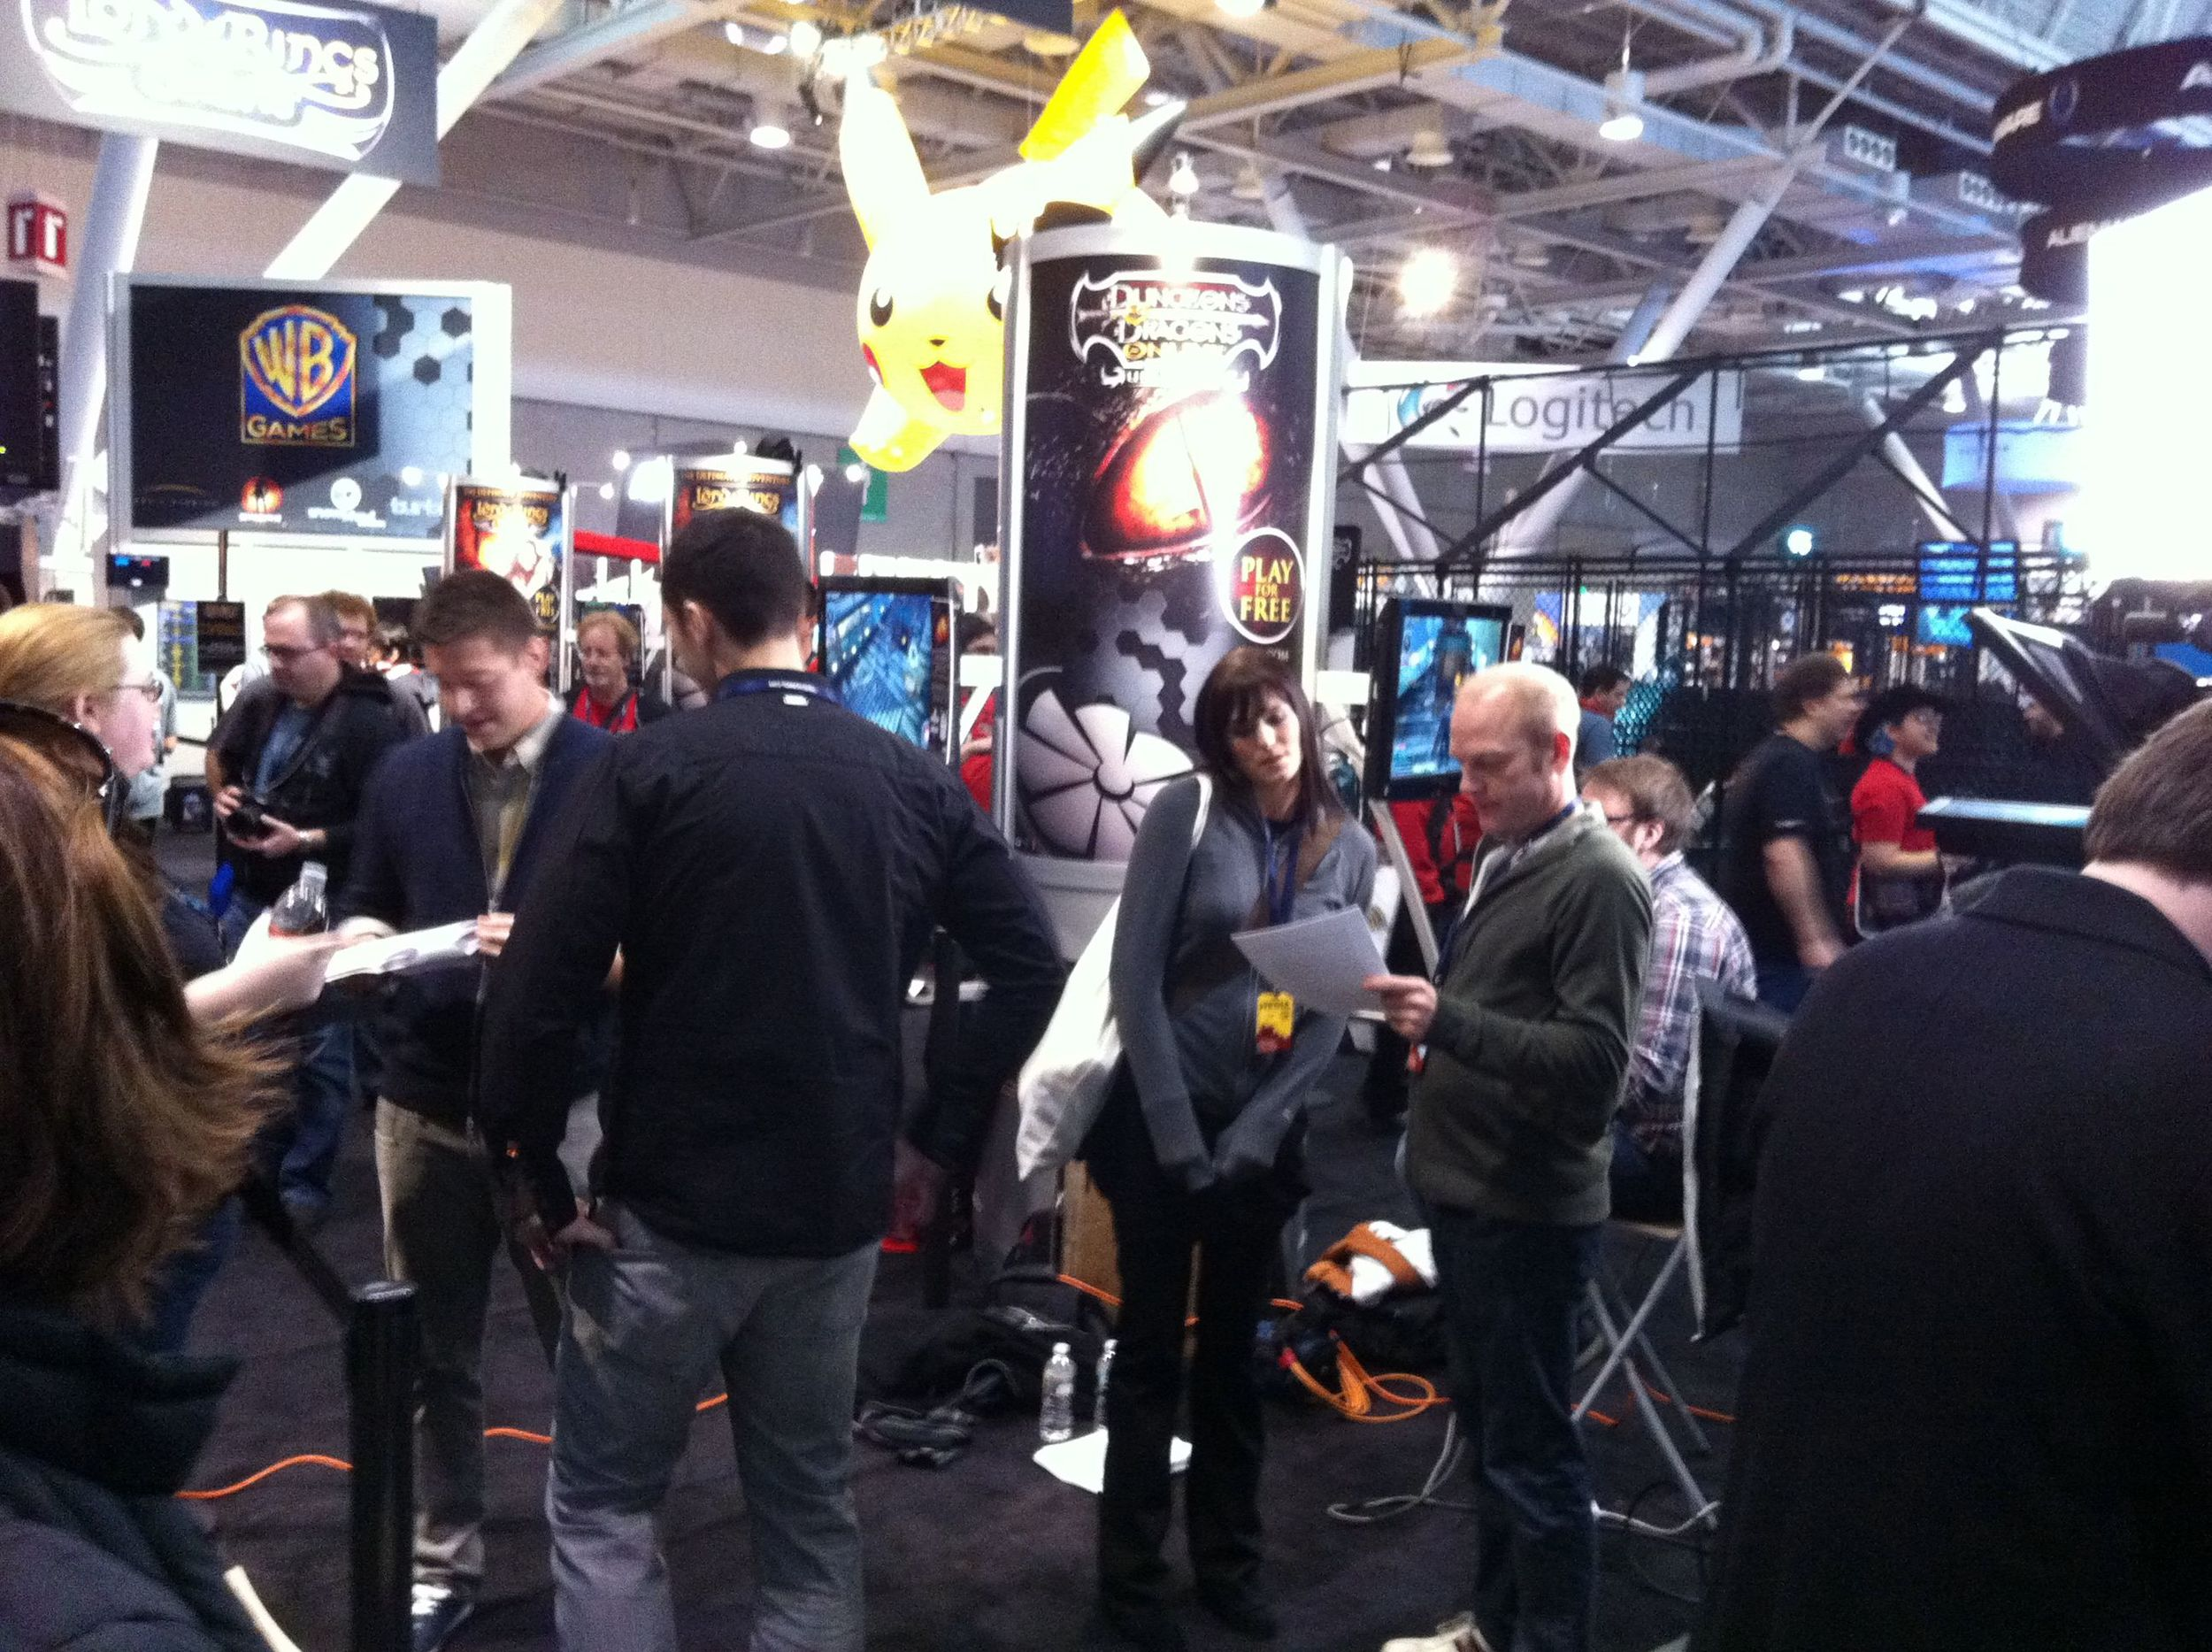 turbine booth at pax east 2011